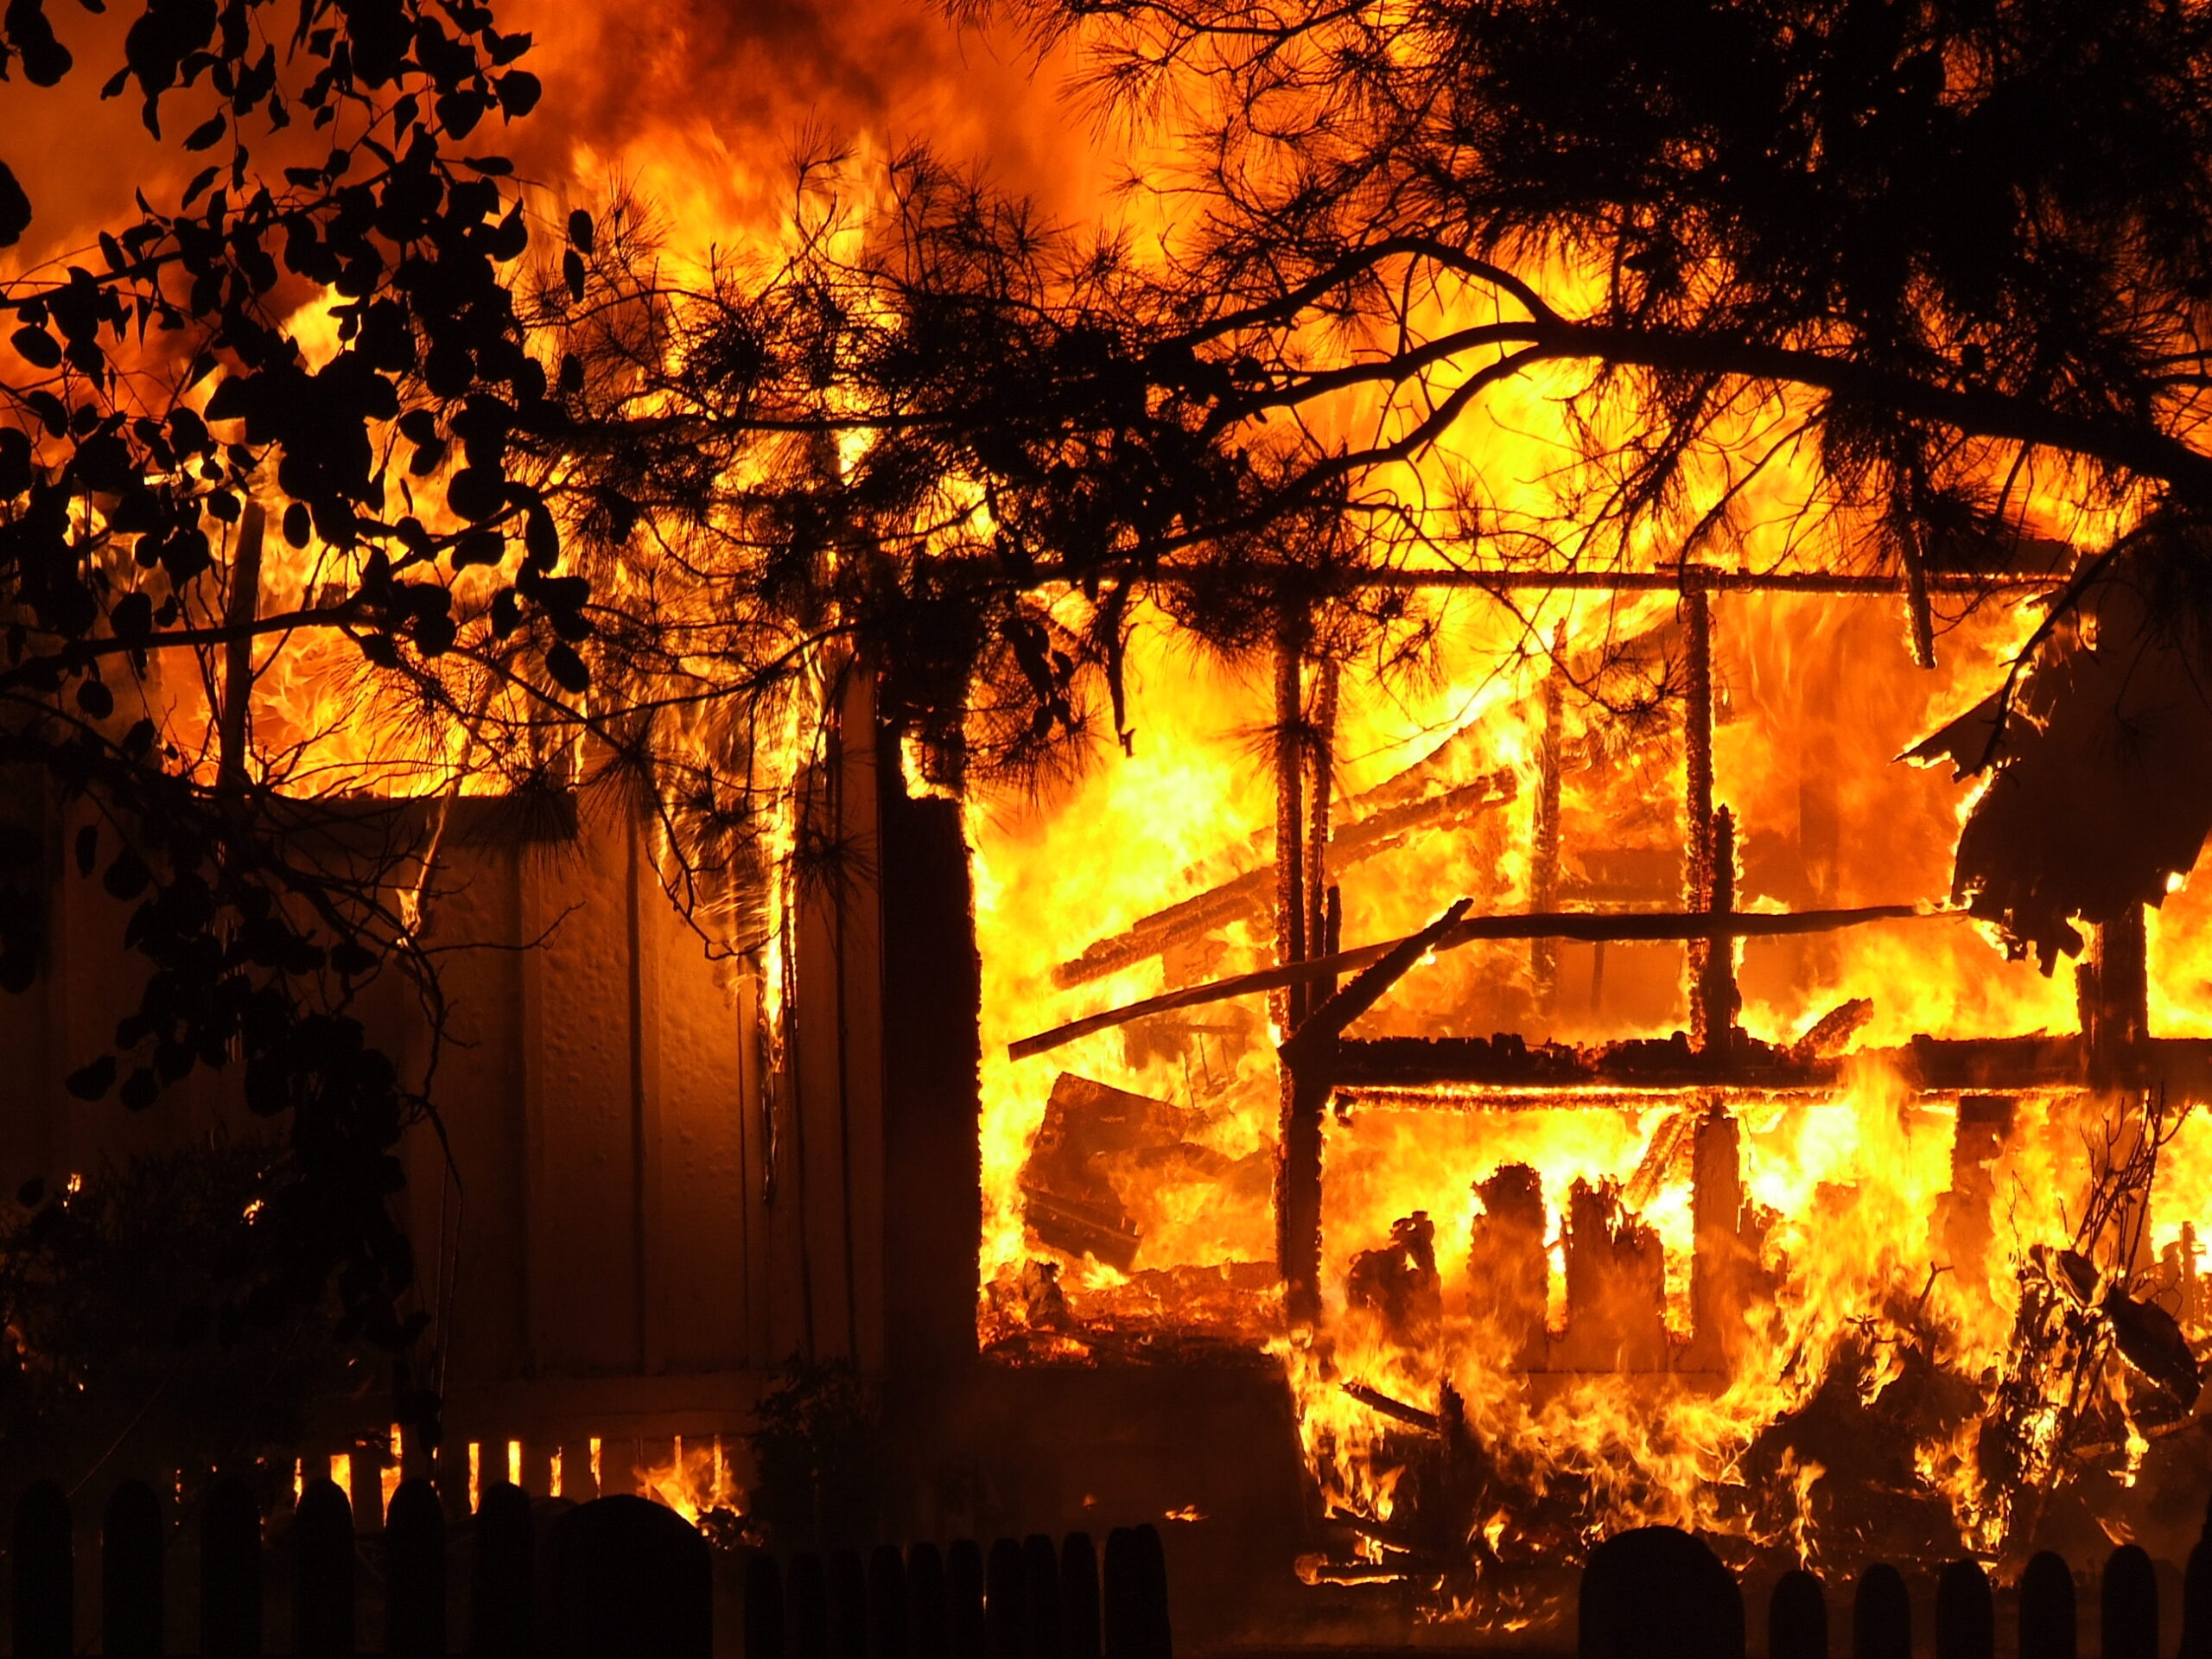 Image of the outline of a house in a fire.